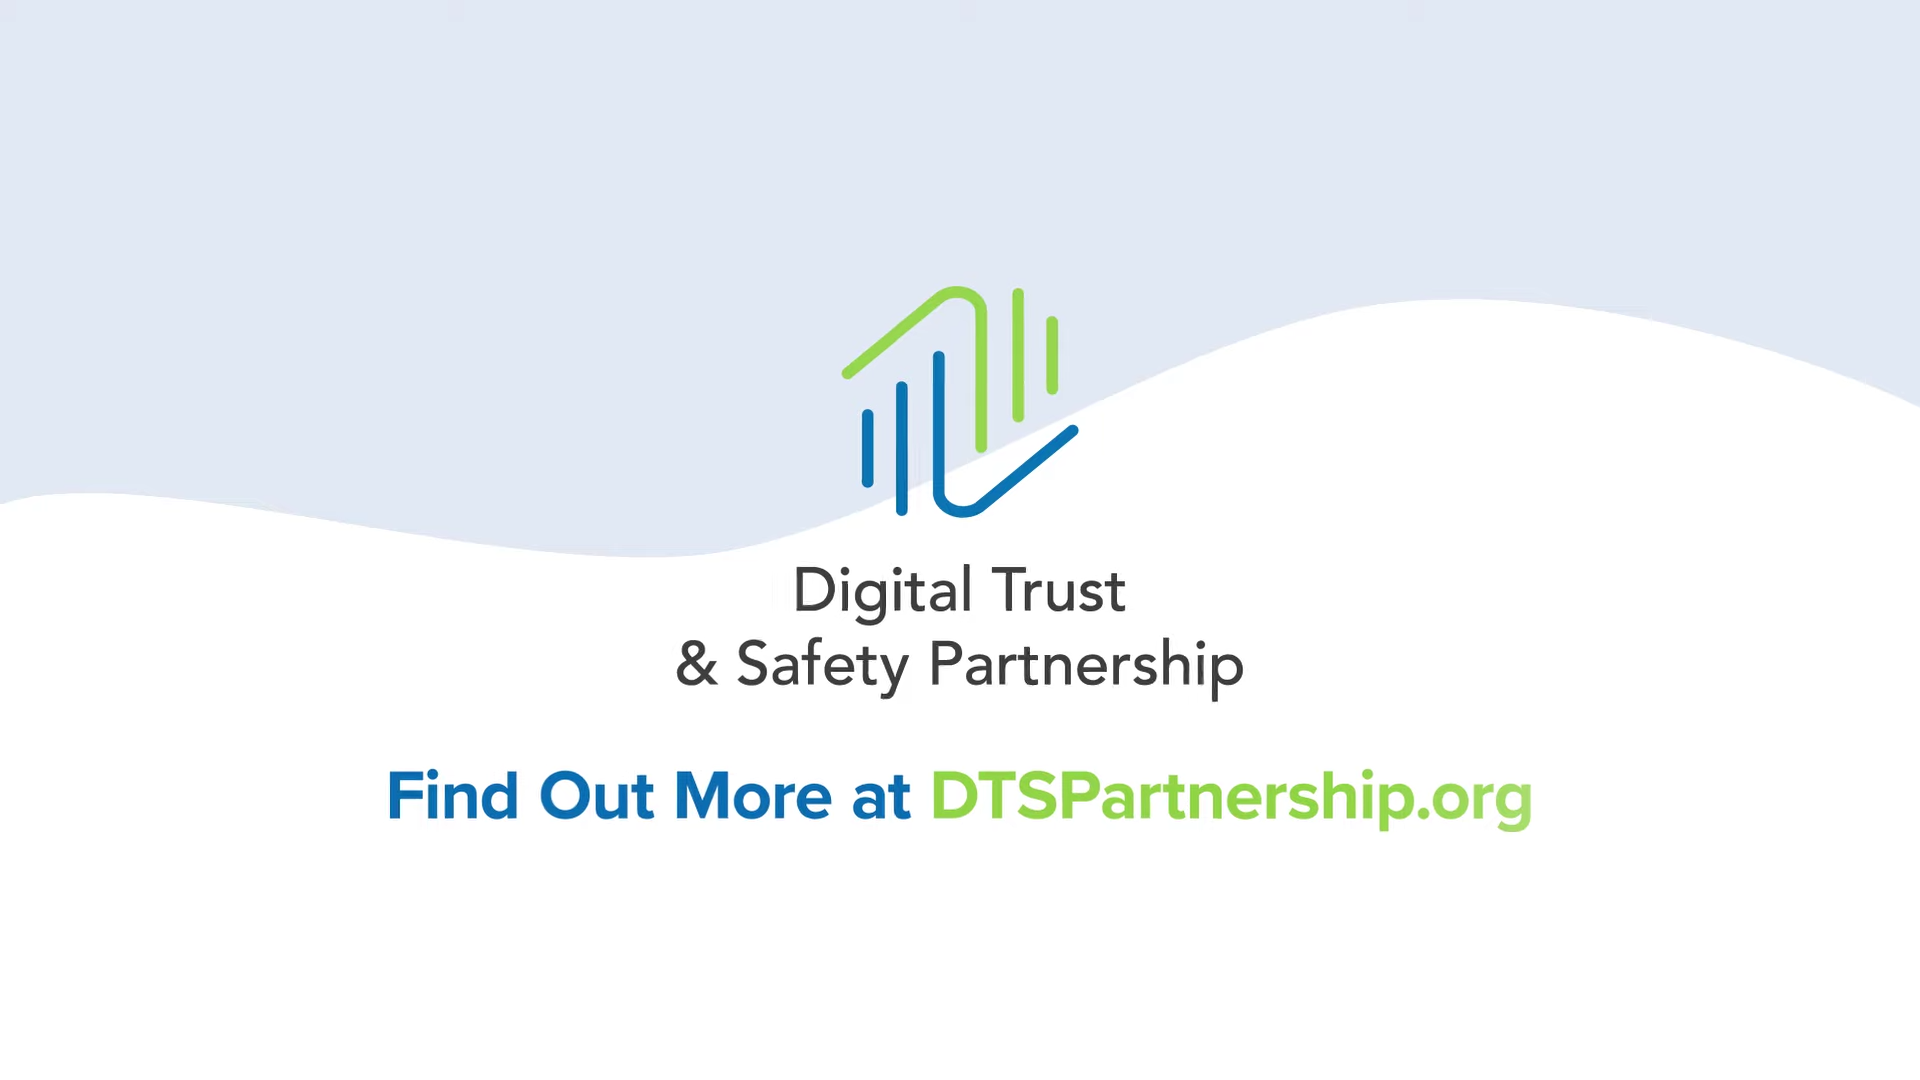 Major Tech Companies Form Partnership to Review Trust and Safety Practices